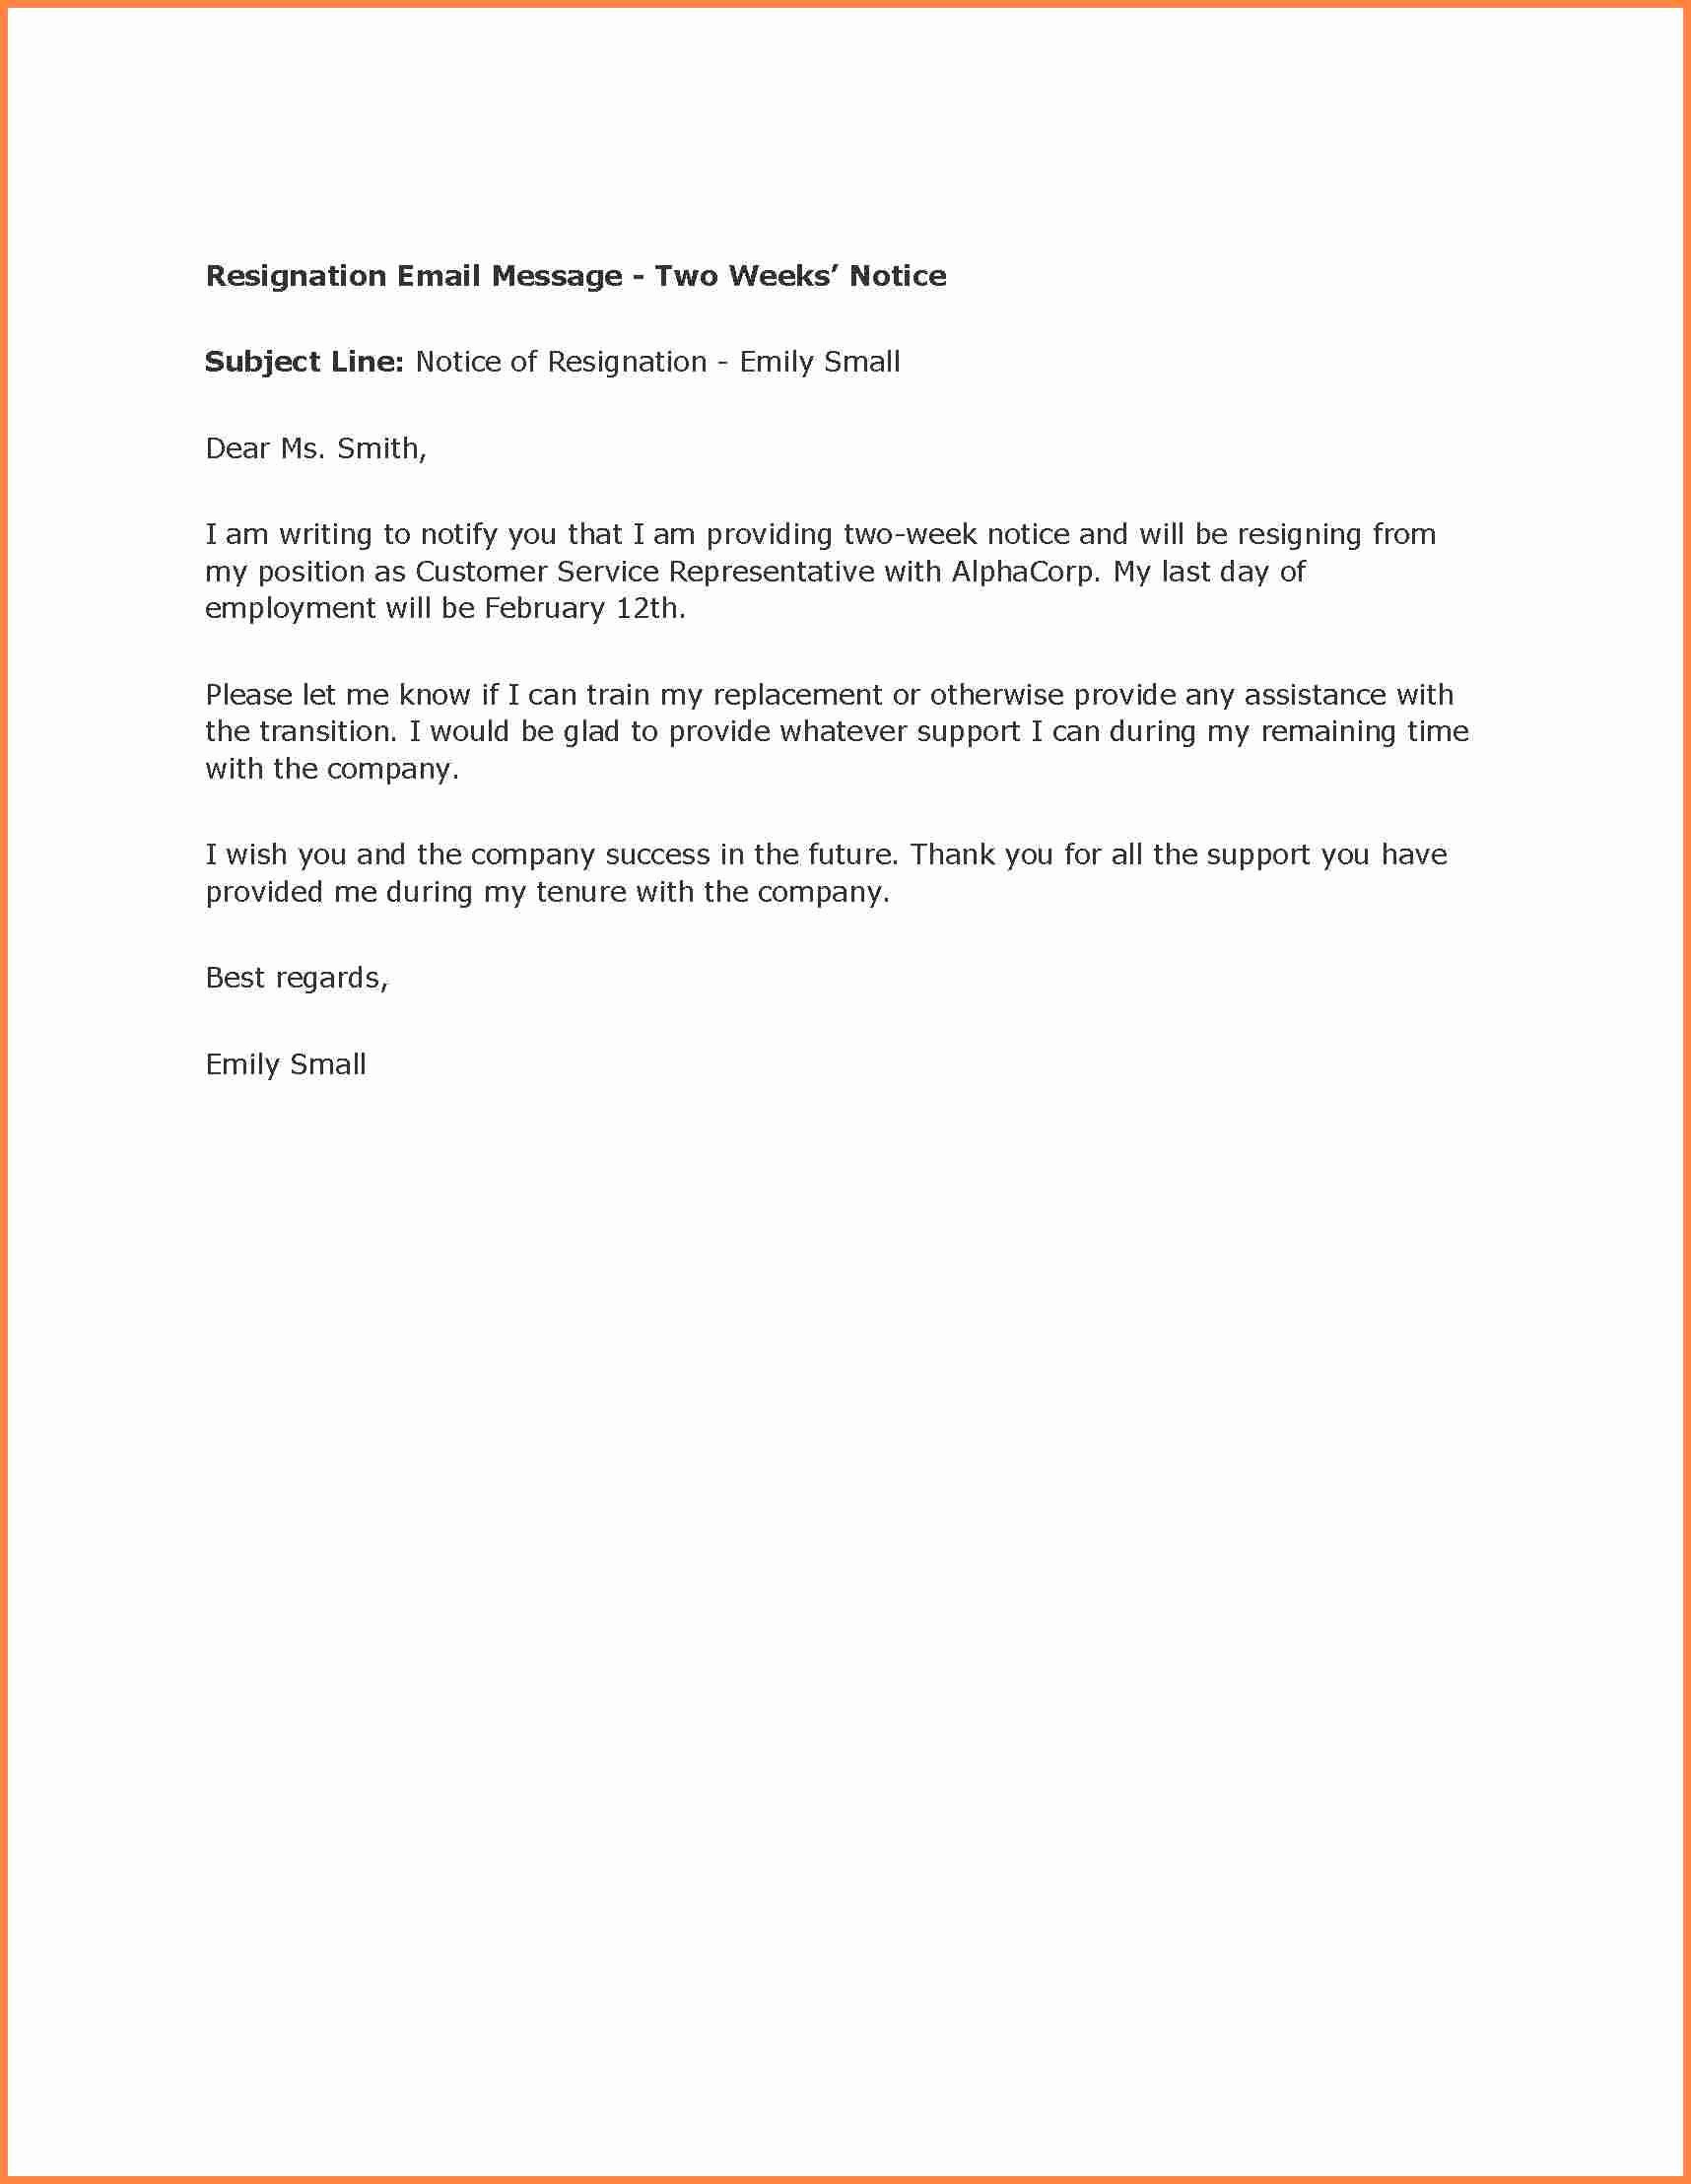 Resignation 2 Weeks Notice Inspirational 5 Resignation Letter 2 Week Notice Samples